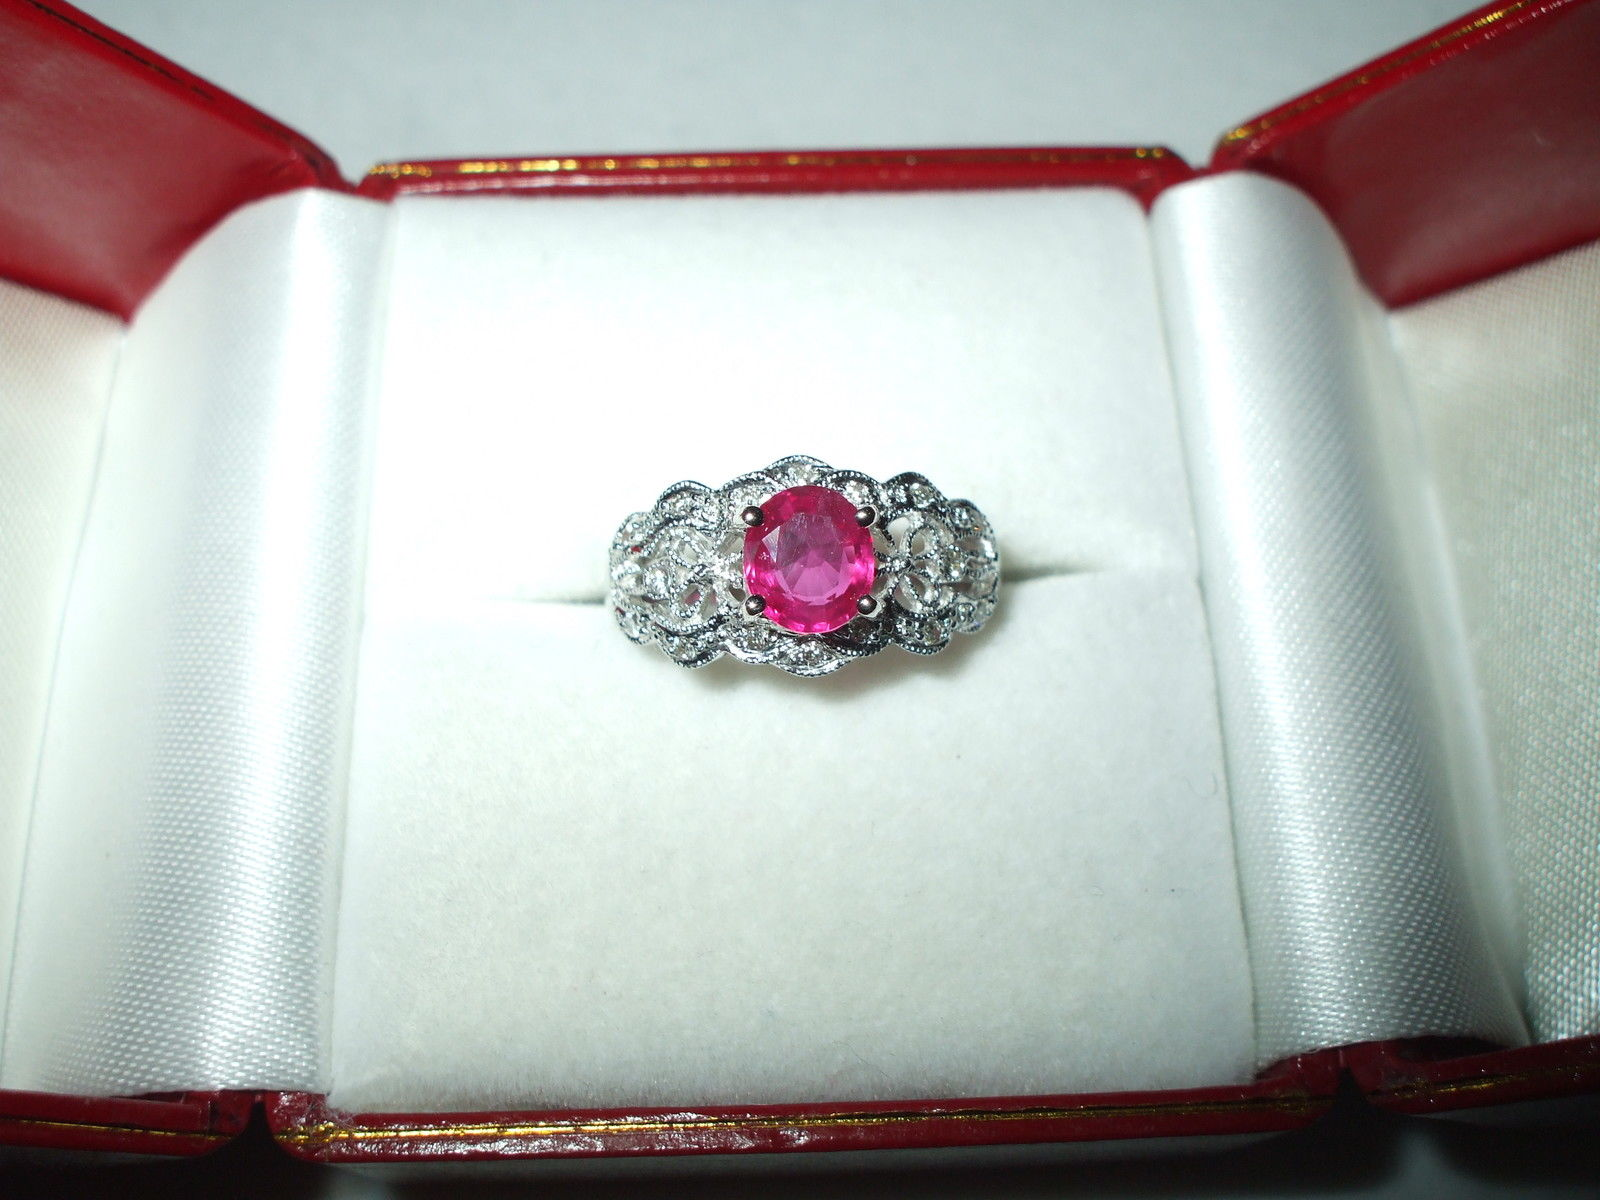 1 ct Genuine Ruby & Diamond Ring 18K white gold NWT $3500